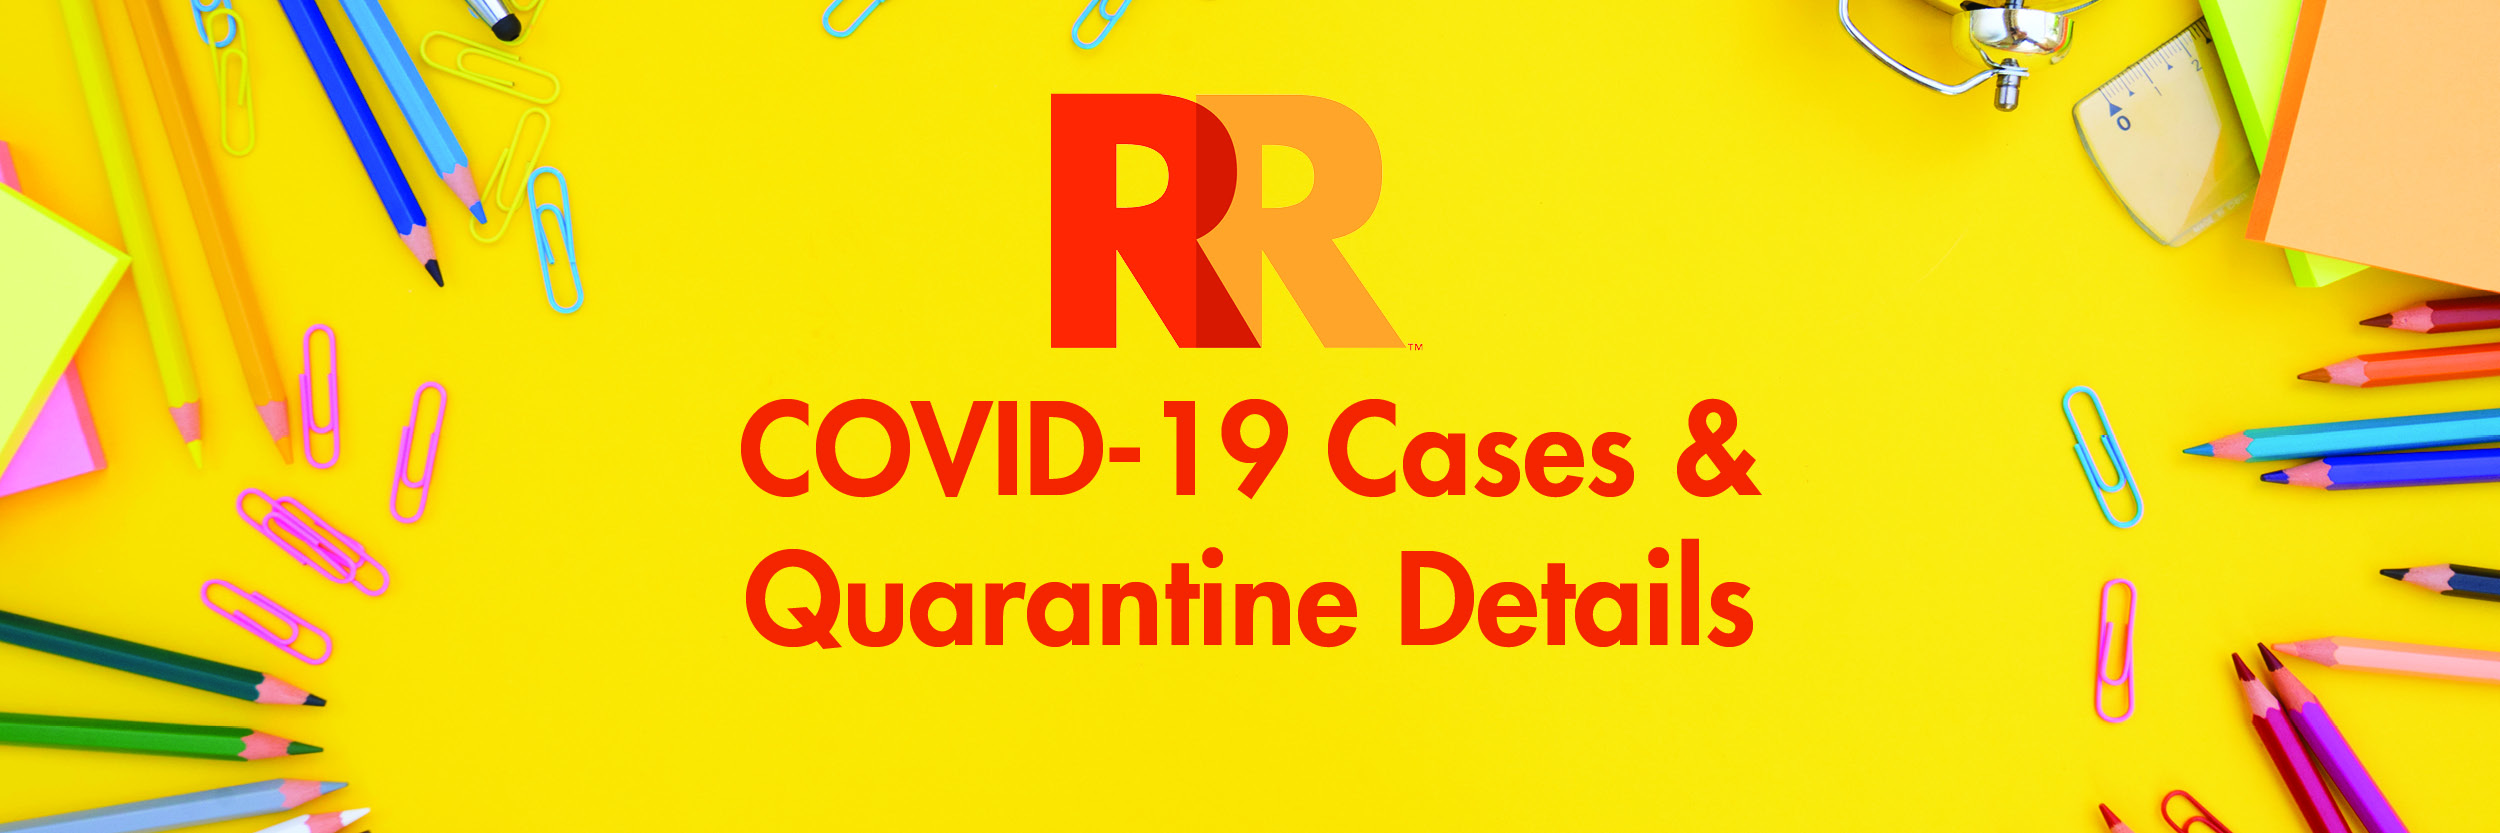 COVID-19 Cases and Quarantines Details web page